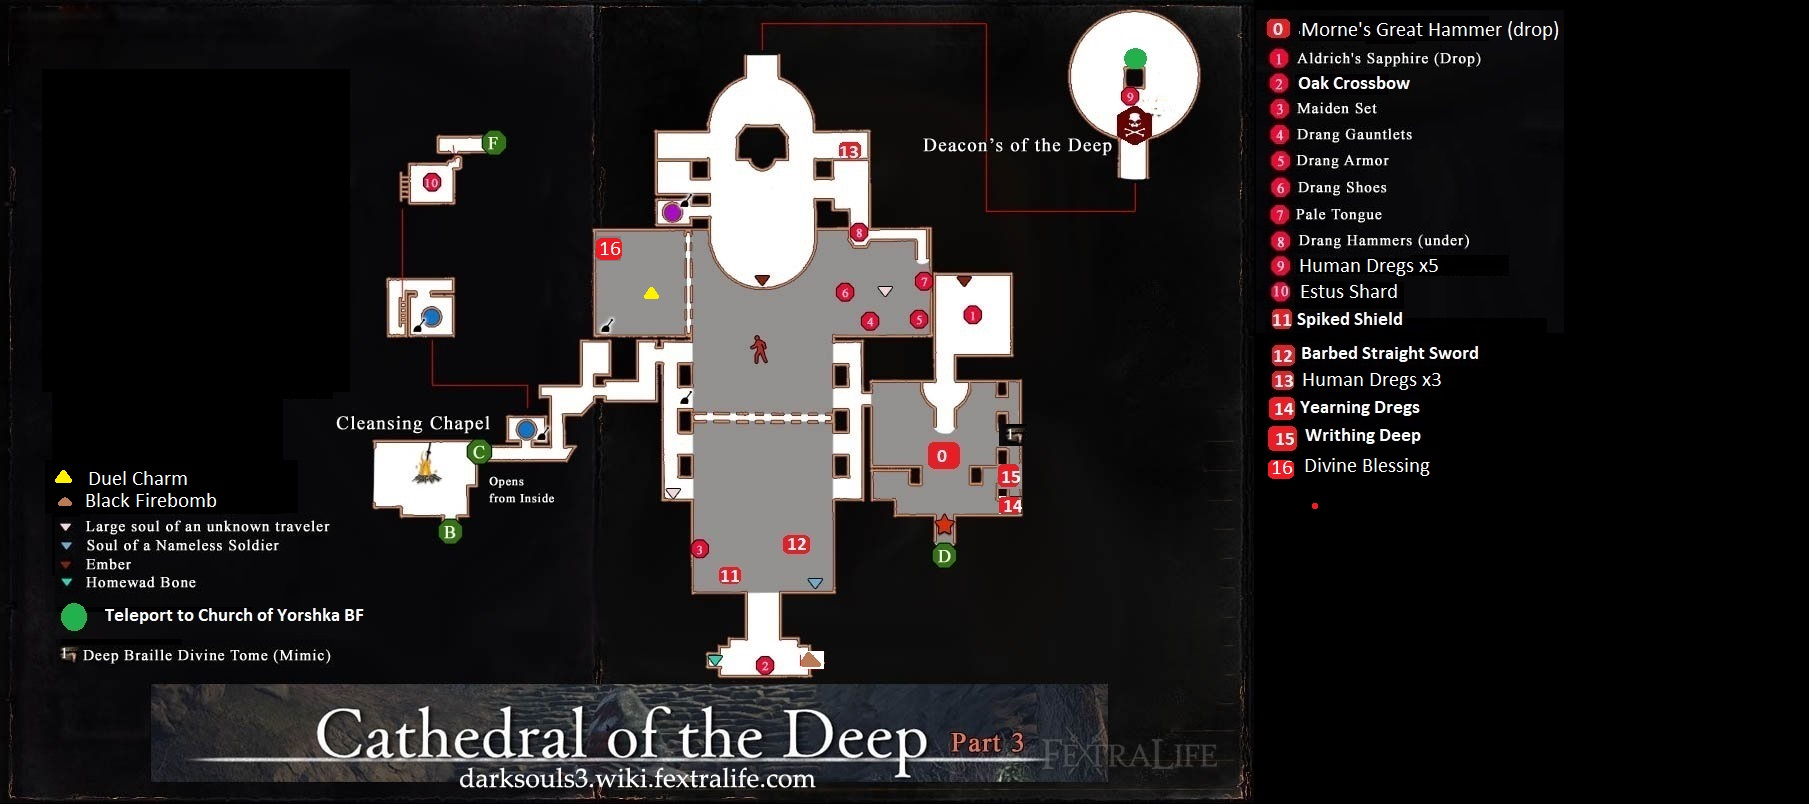 cathedral_of_the_deep_3.jpg